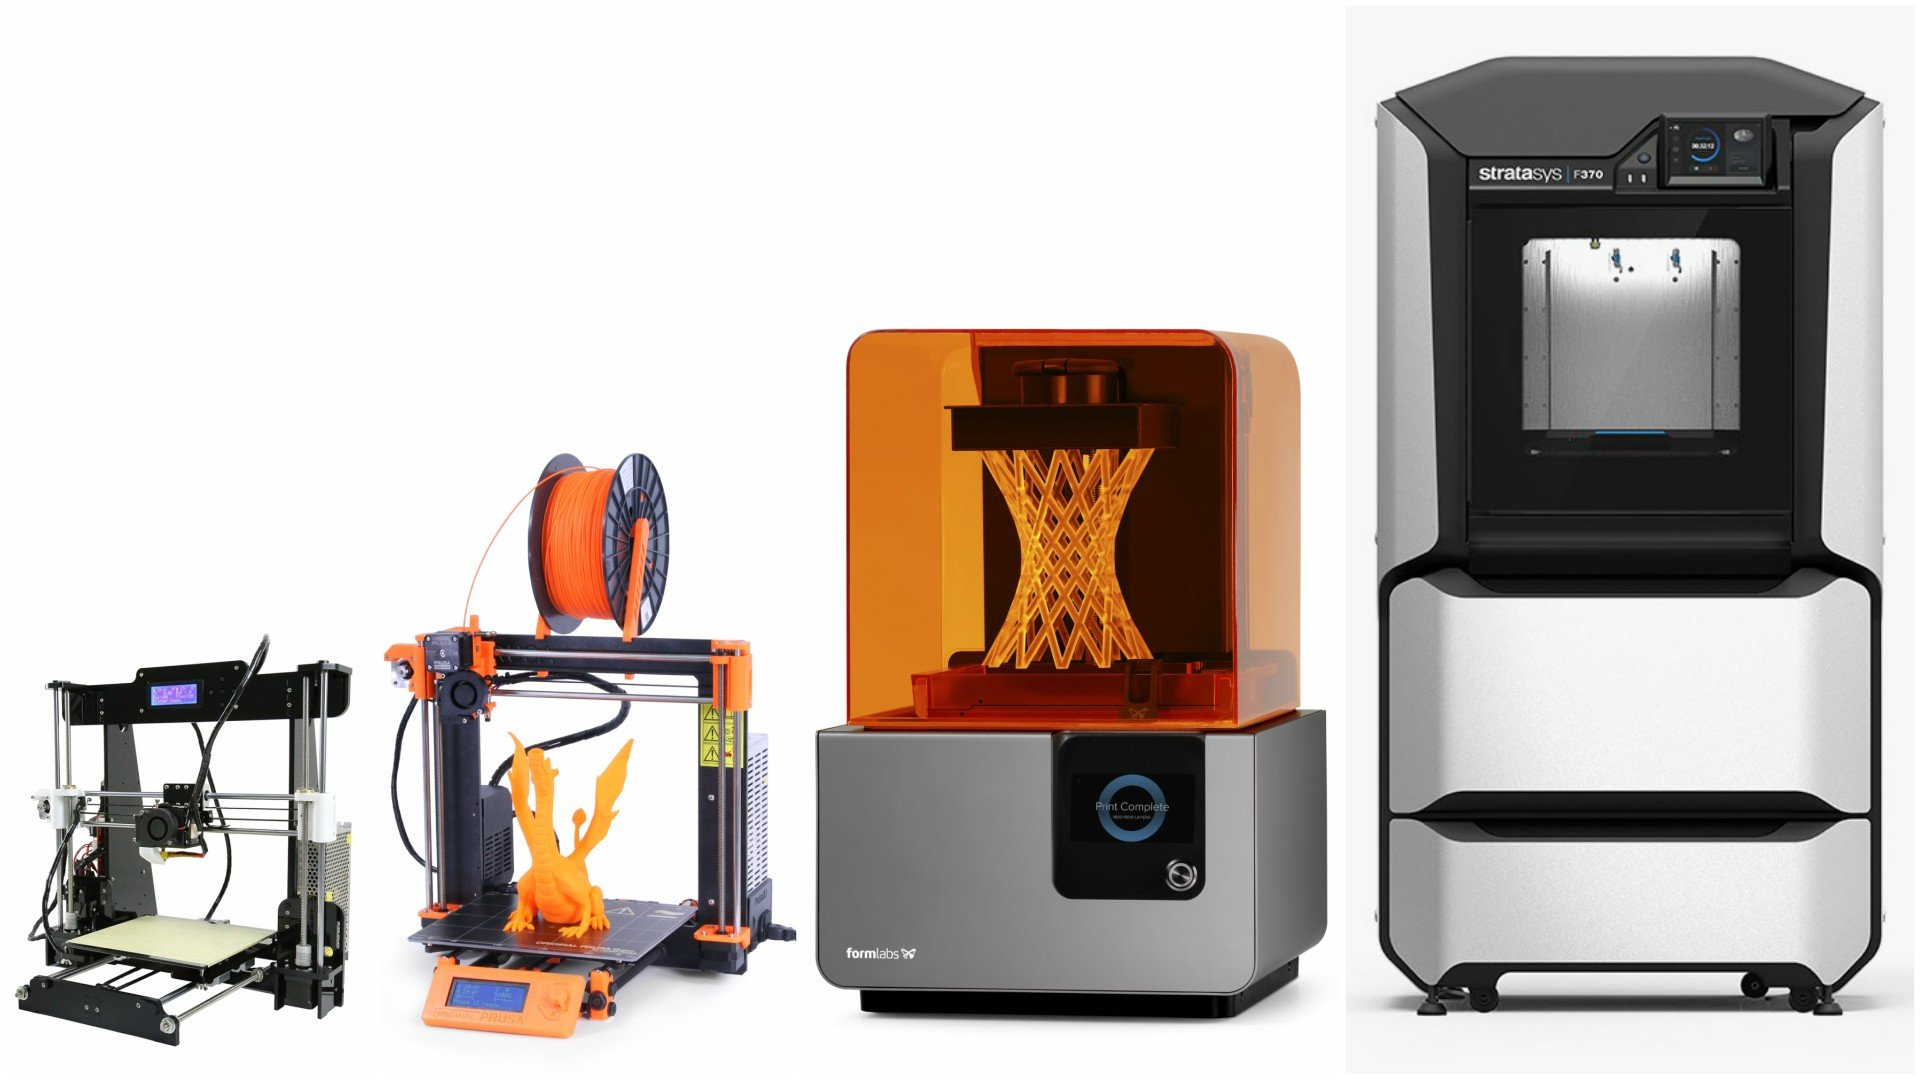 3D Printer Price: How Much Does a 3D Printer Cost? | All3DP